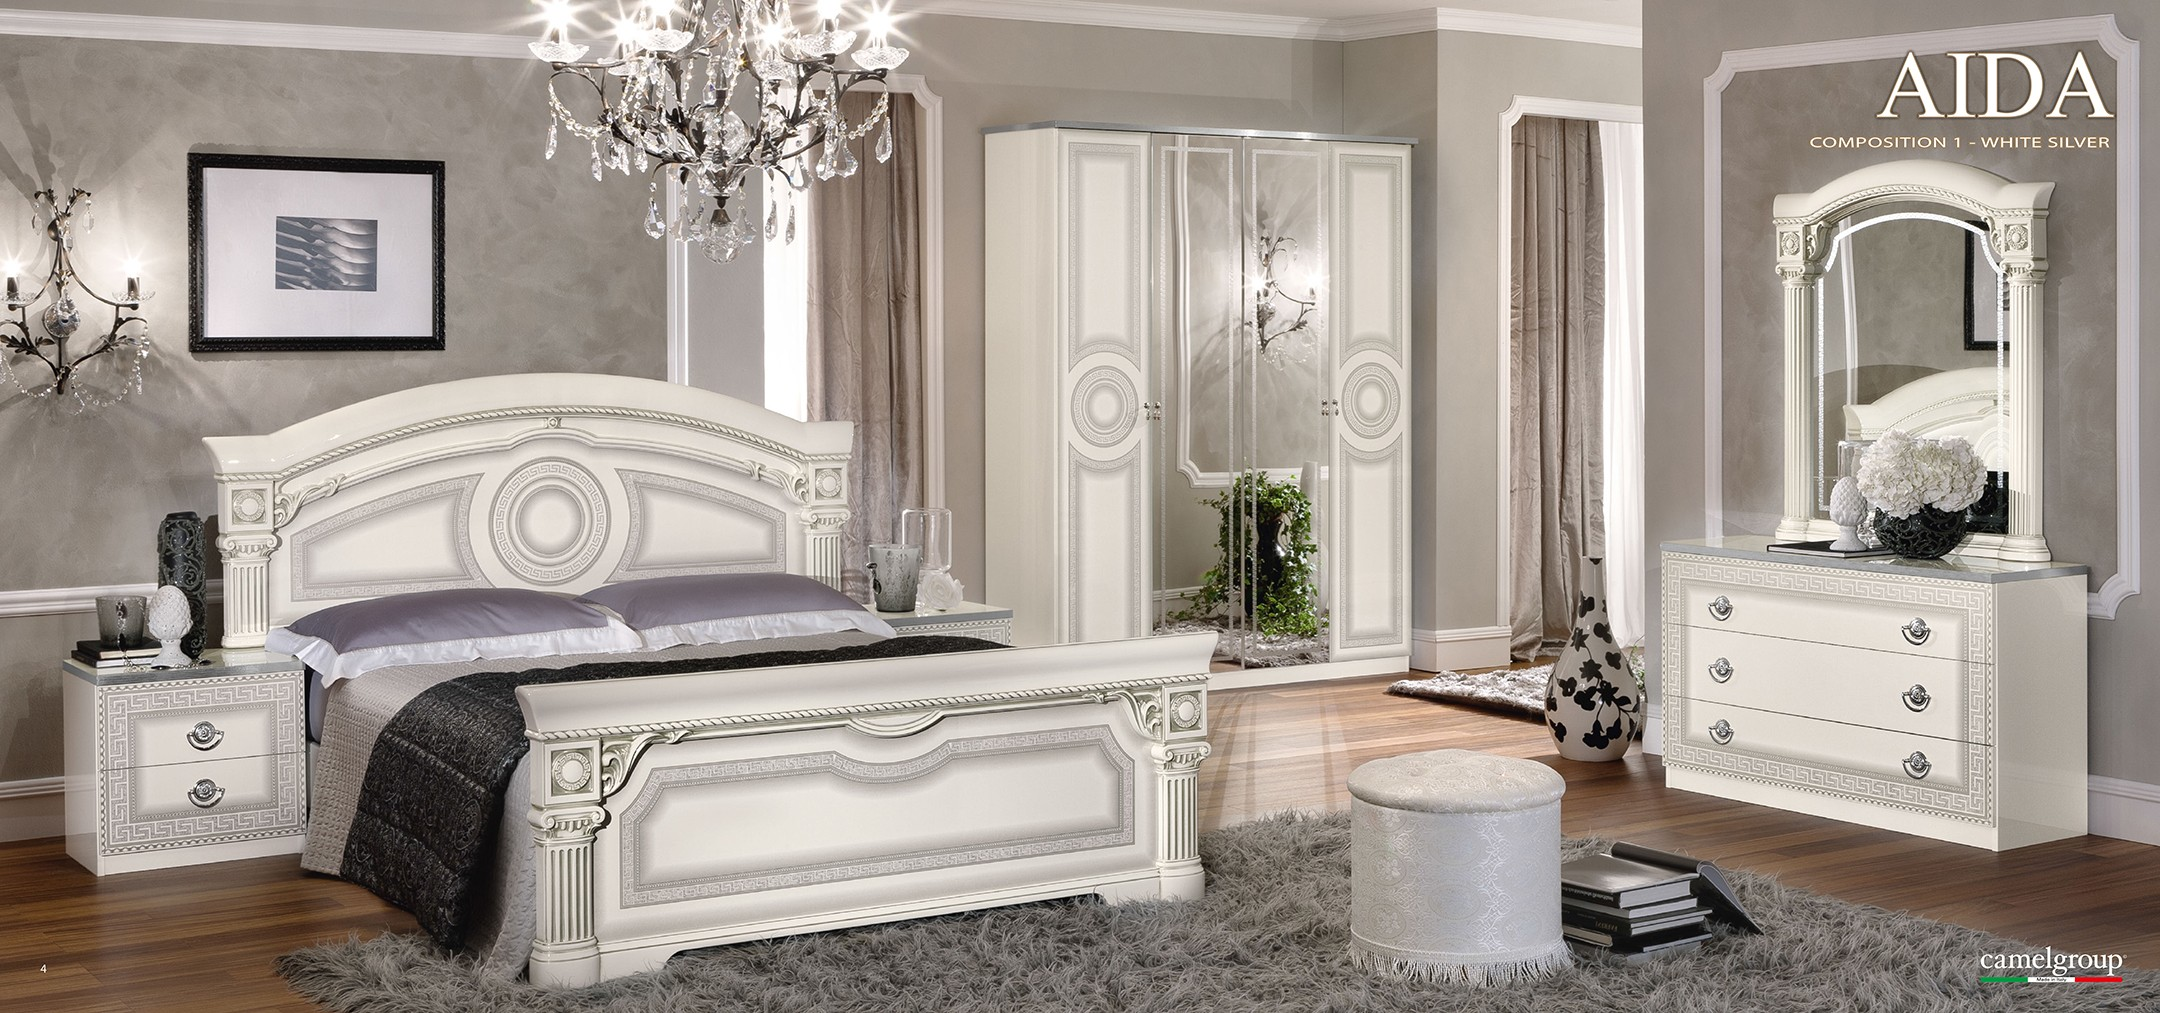 Italian Bed Set Furniture On Aida Italian Bedroom Set In White And Silver Finish Esf